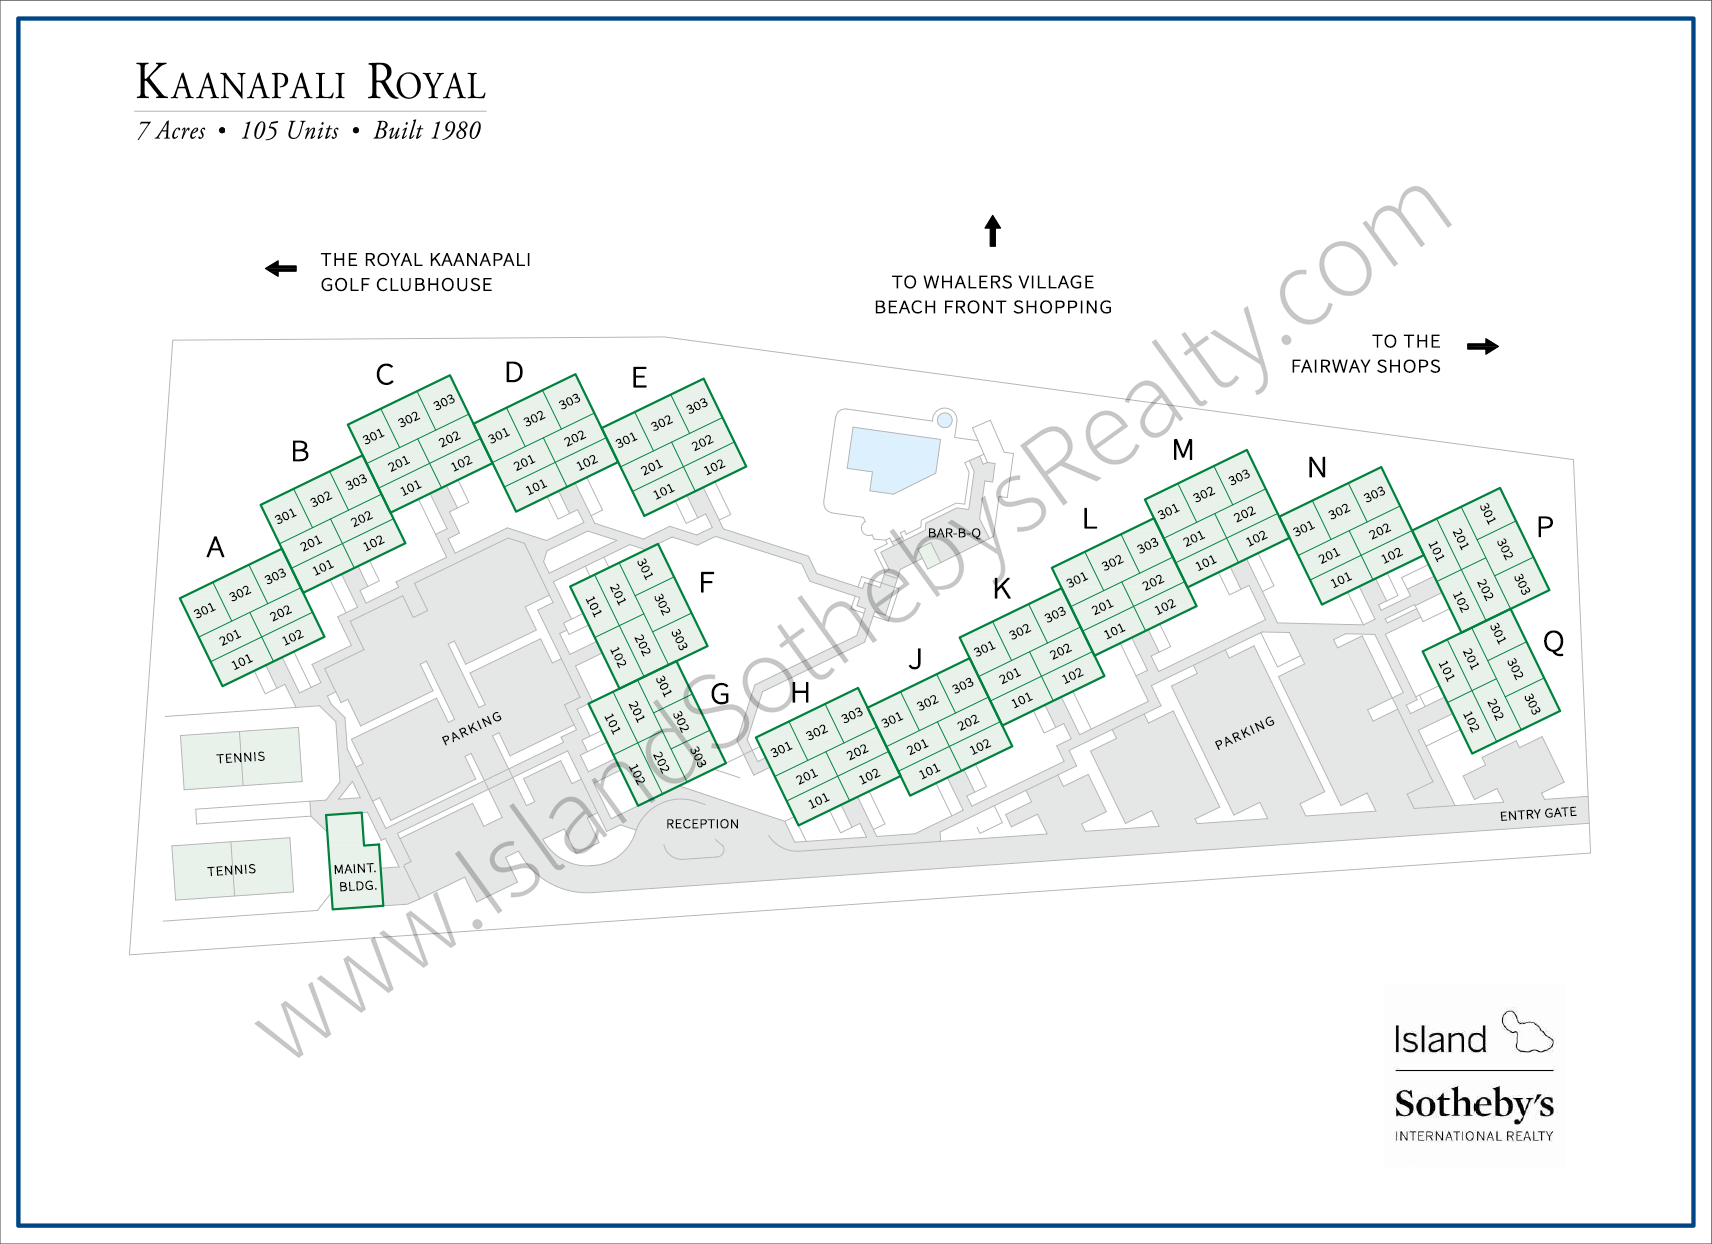 Kaanapali Royal Map